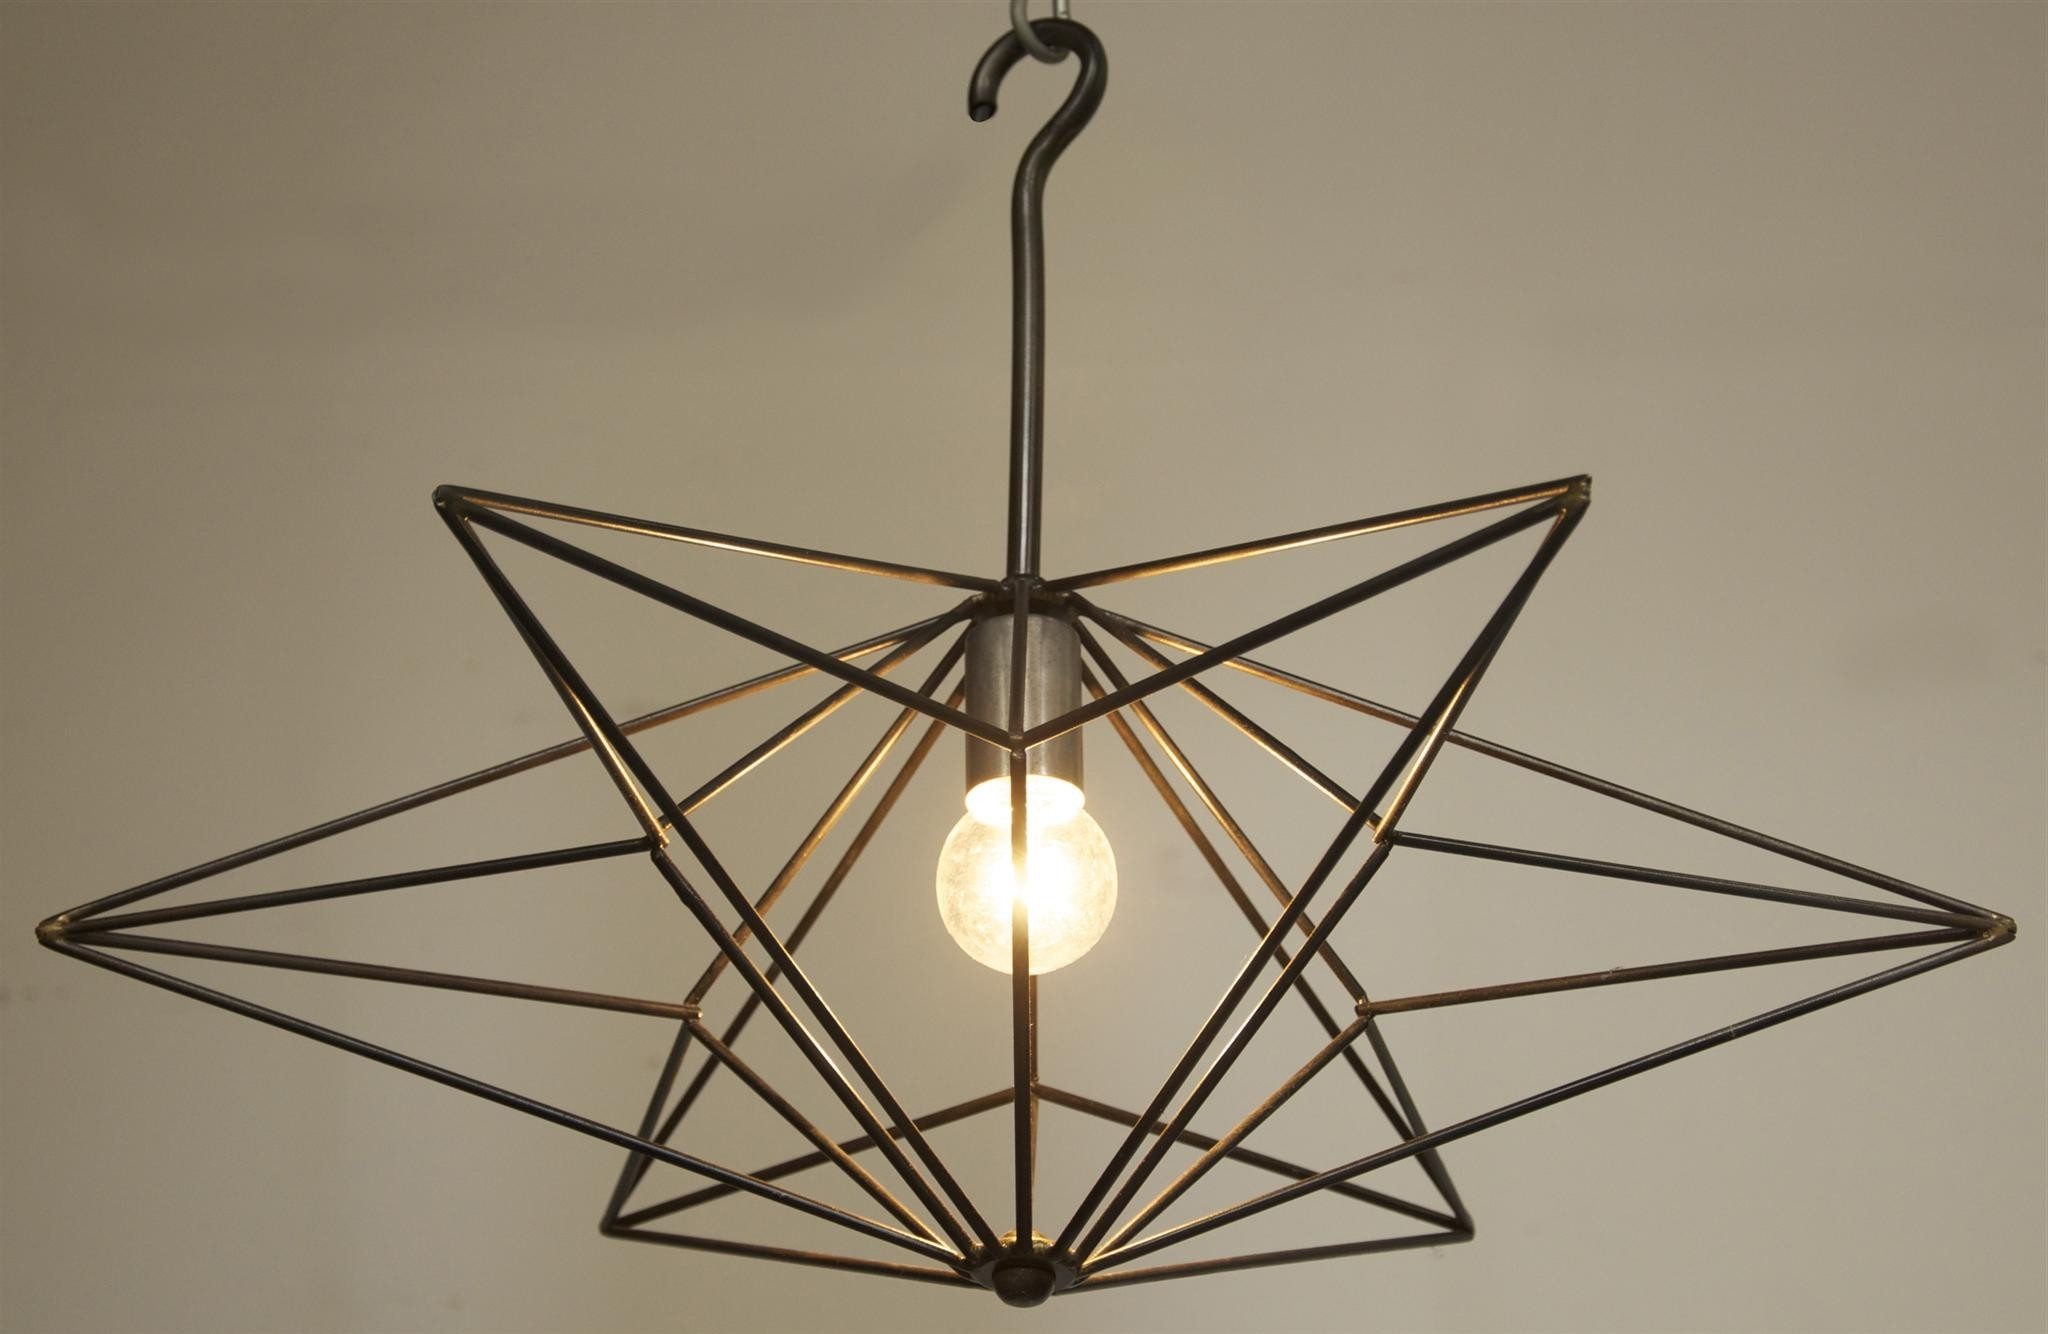 Outdoor Hanging Star Lights In Fashionable Star Pendant Light Fixture Splendid Home Depot Hanging Lights (View 12 of 20)